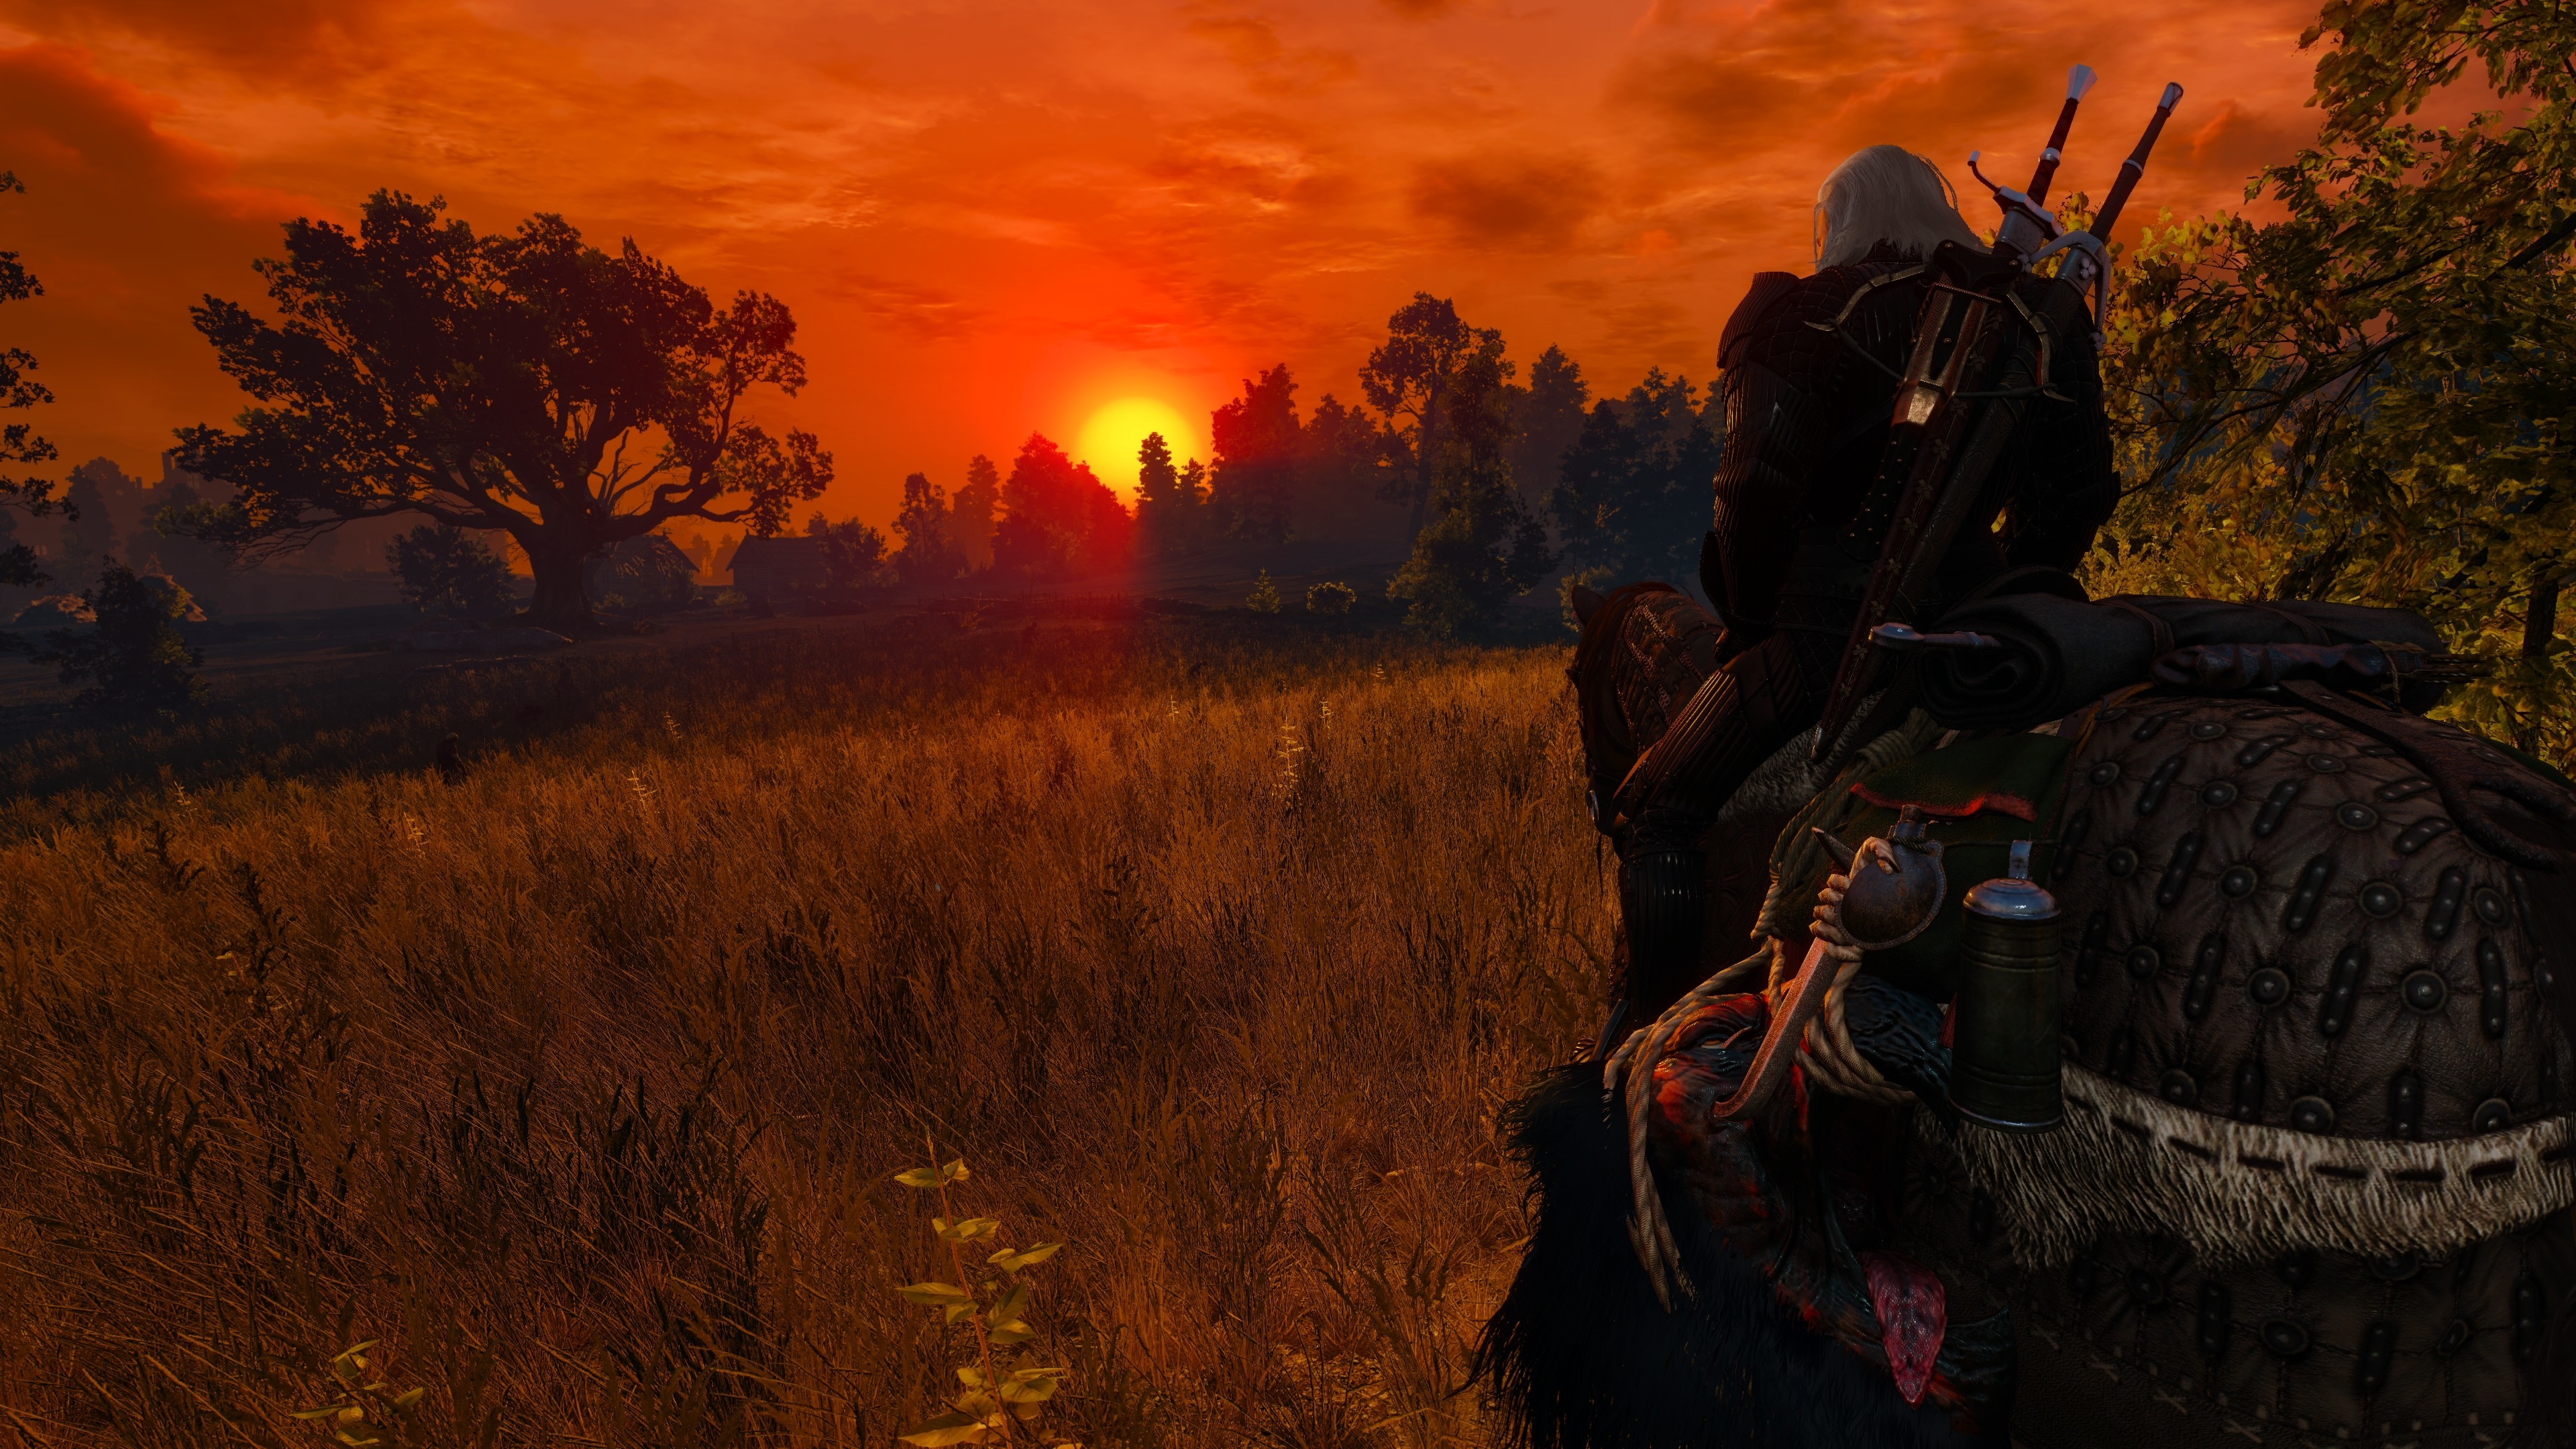 3840x2160 sunset evening The Witcher 3 Wild Hunt Nvidia Ansel Geralt of Rivia Looking  into the distance